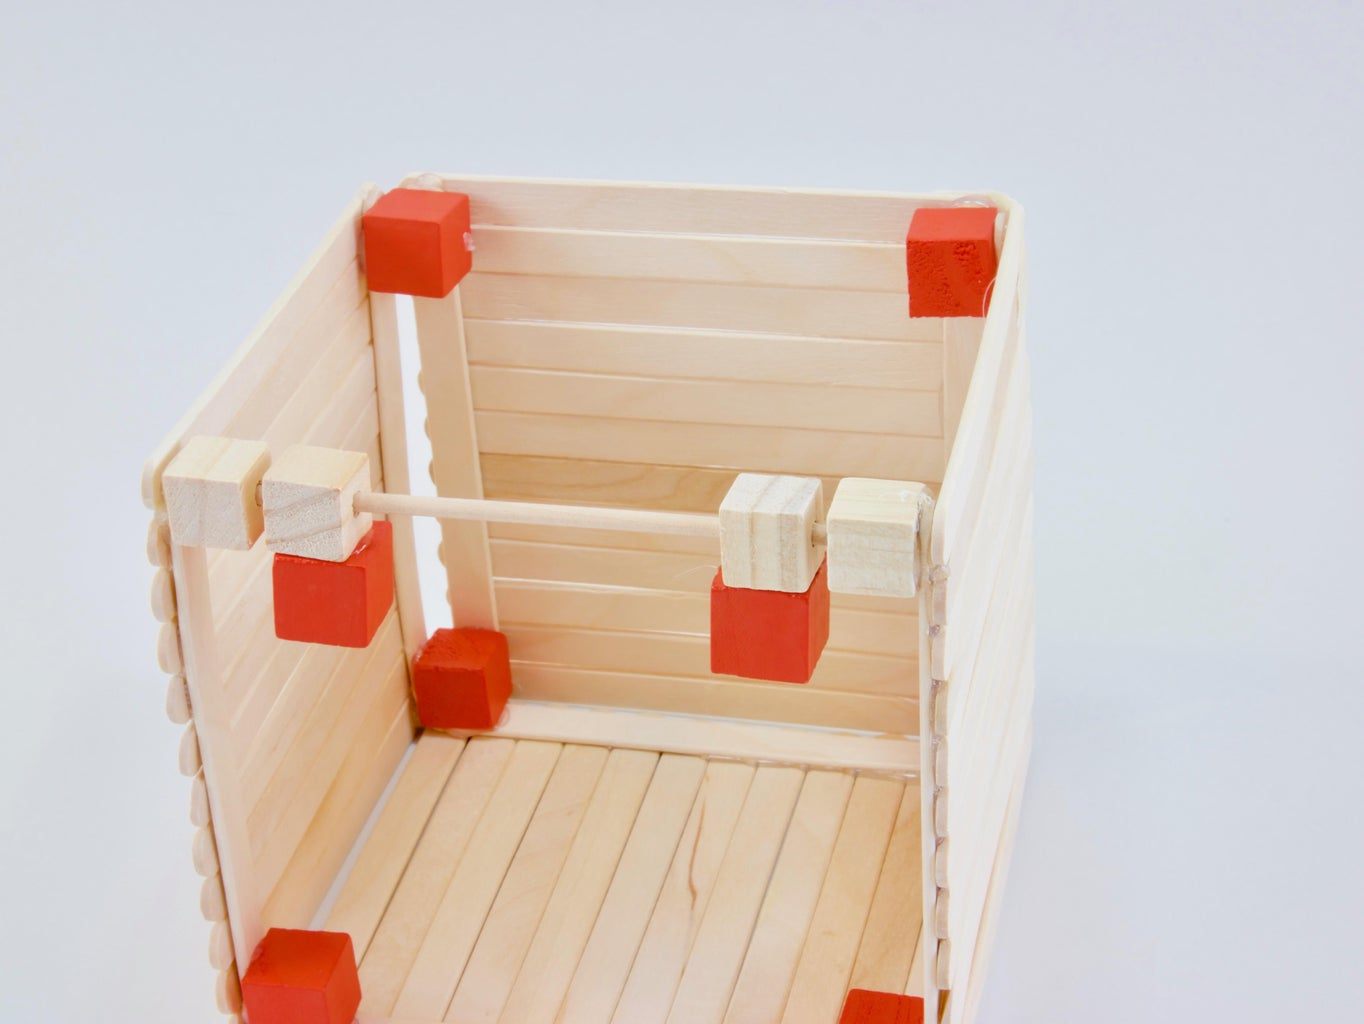 Create the Hinge and Lid